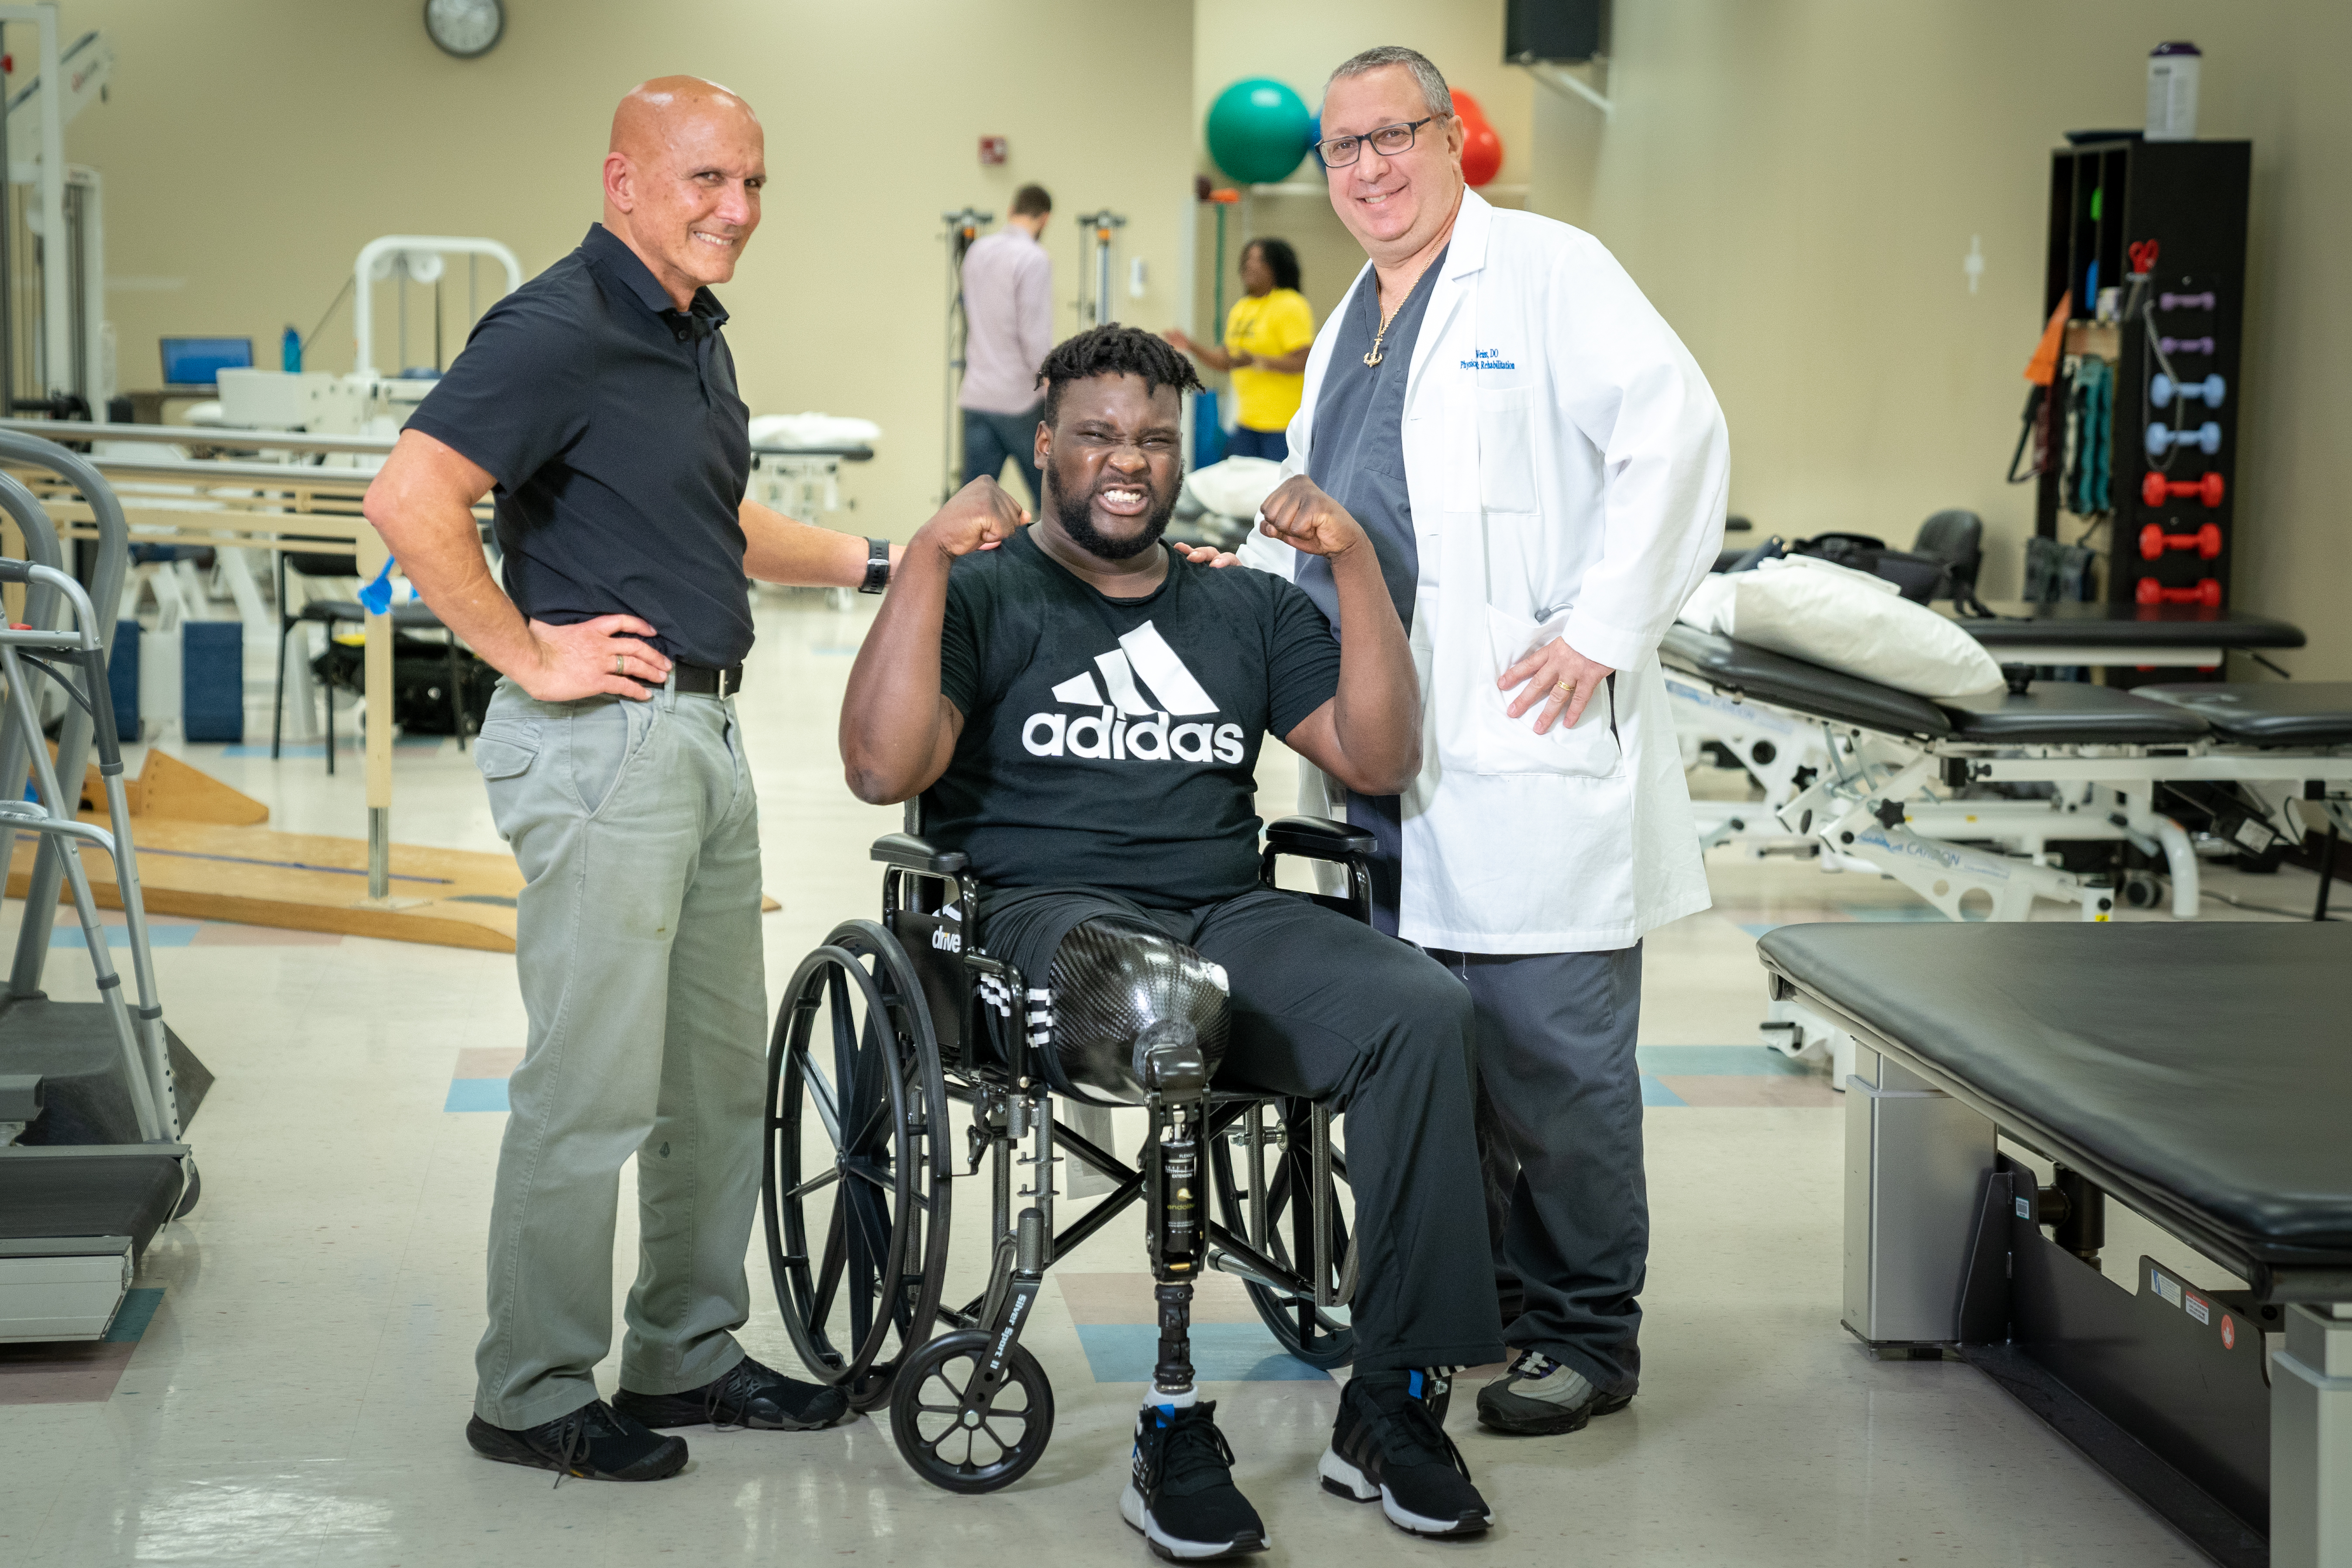 Dr. Weiss with Jalen